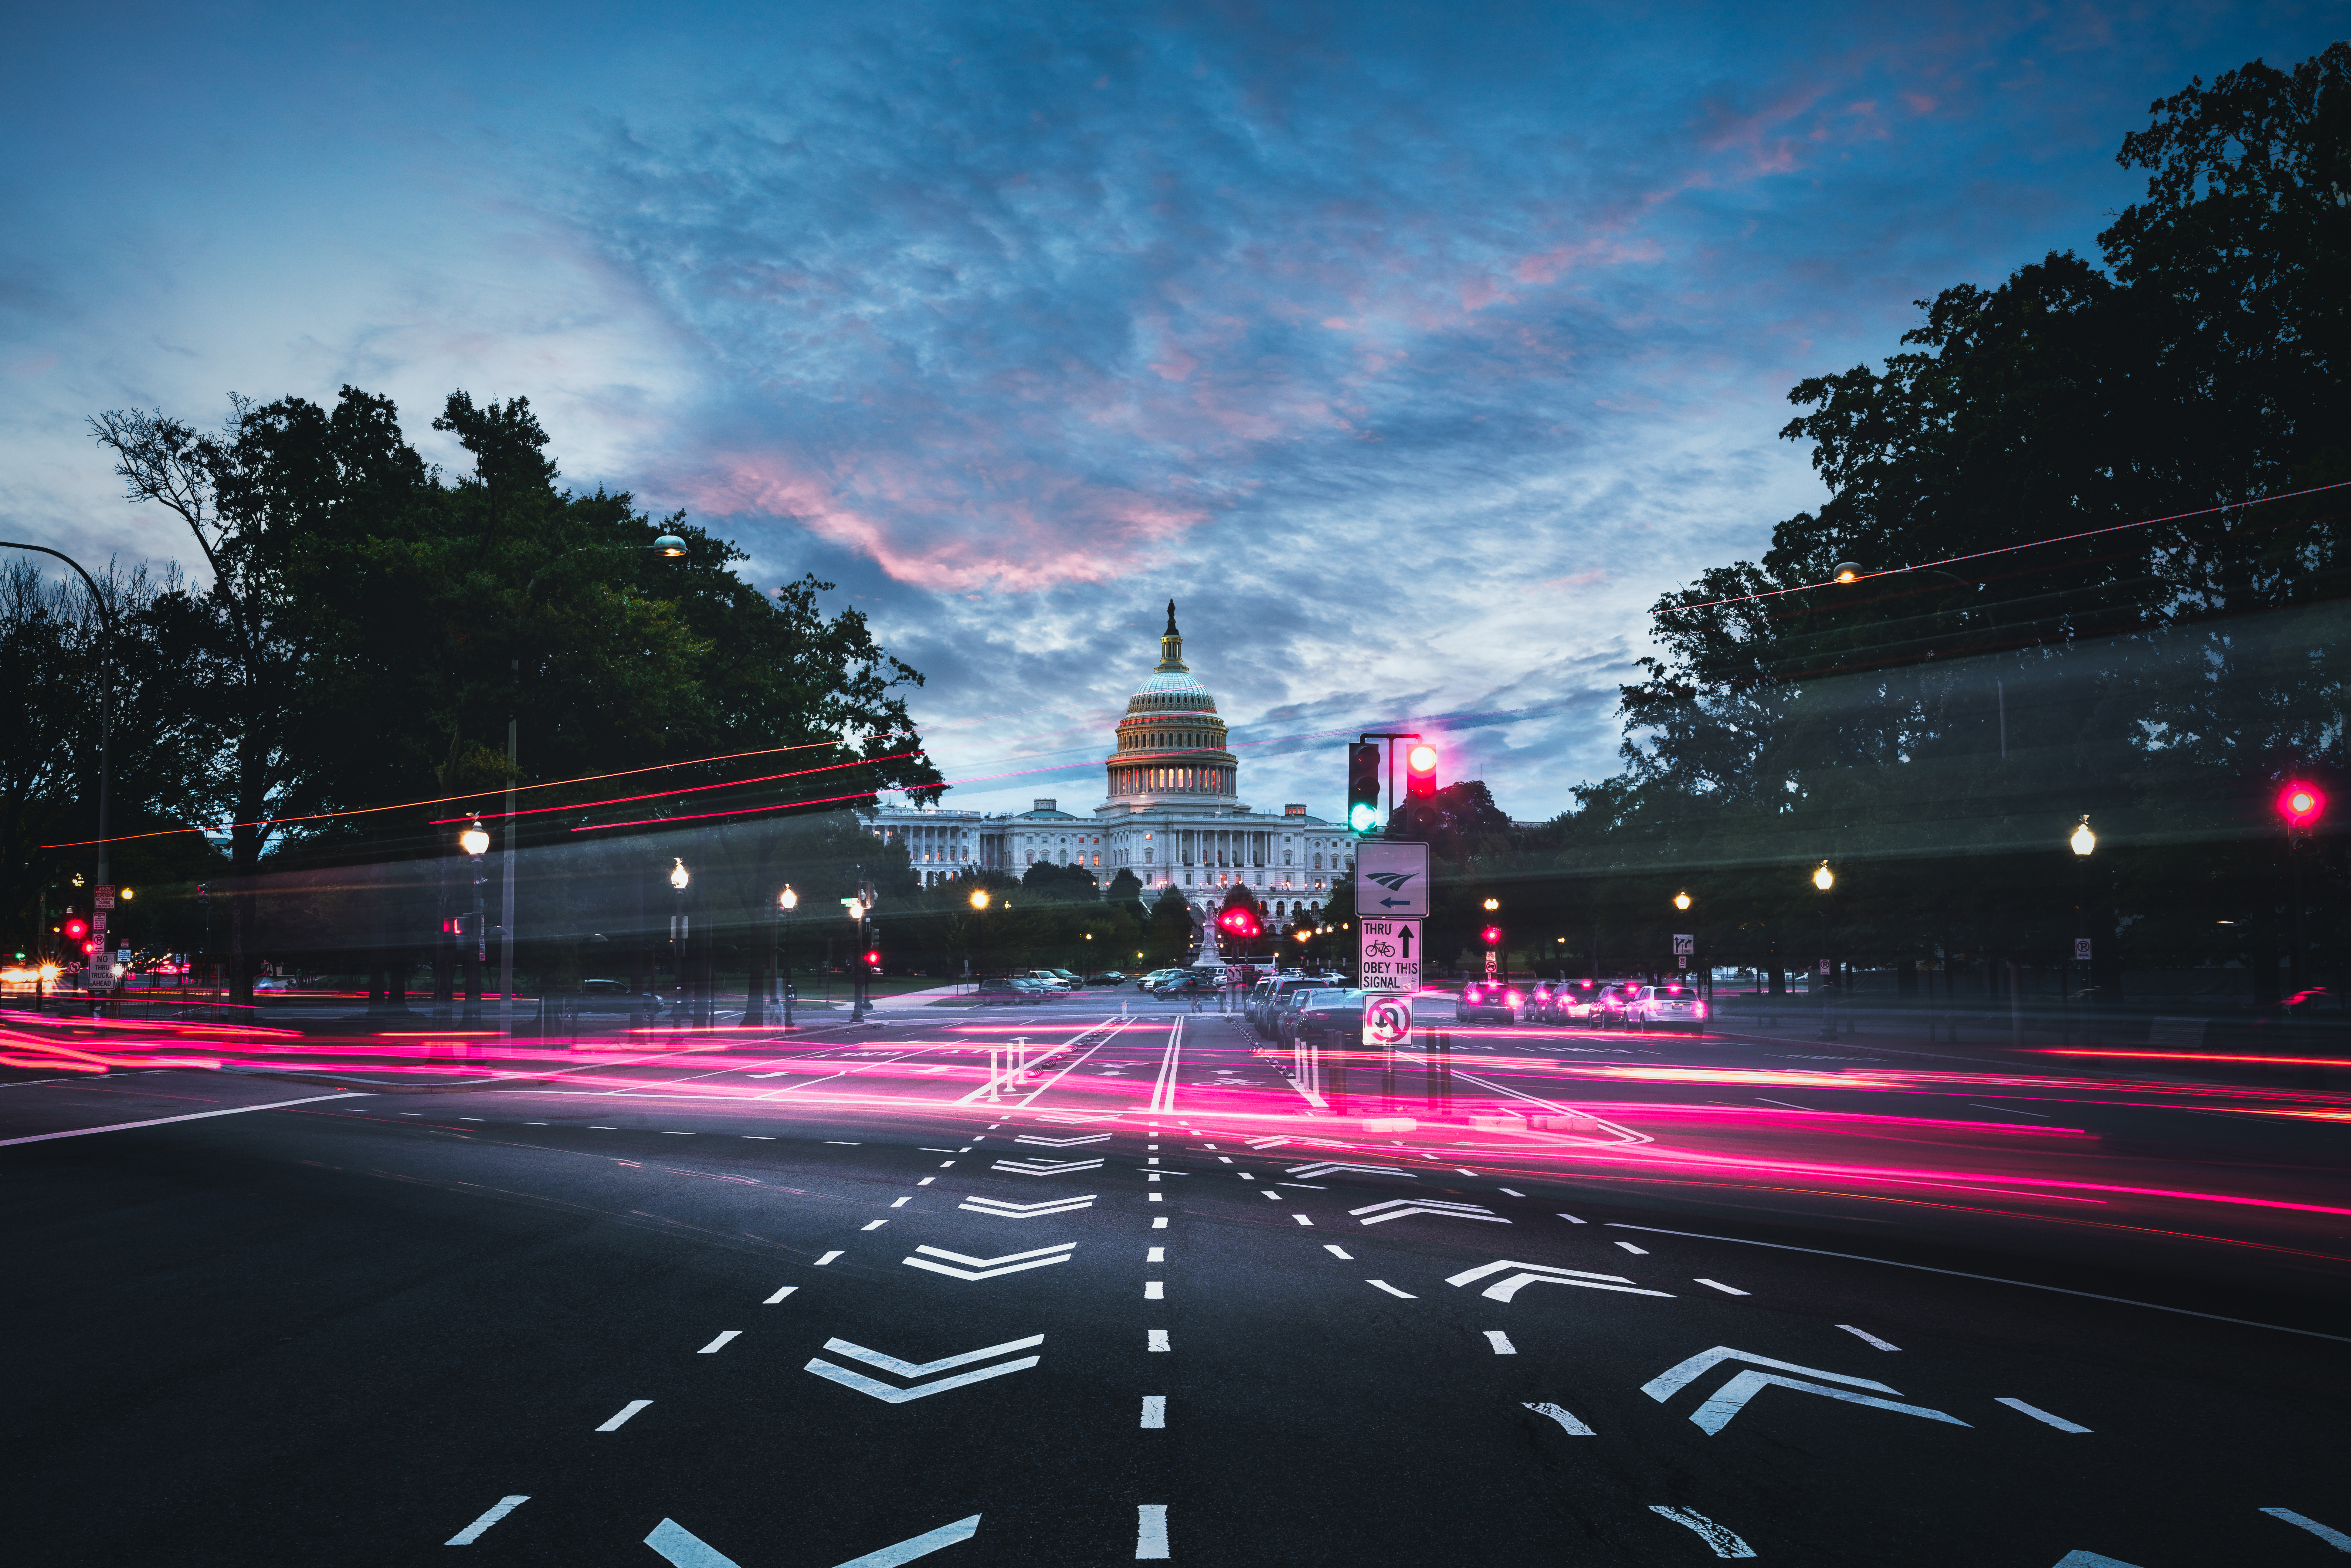 The light trail from cars speeding through an intersection near a federal capital building. Two bike lanes go through the intersection in either direction.